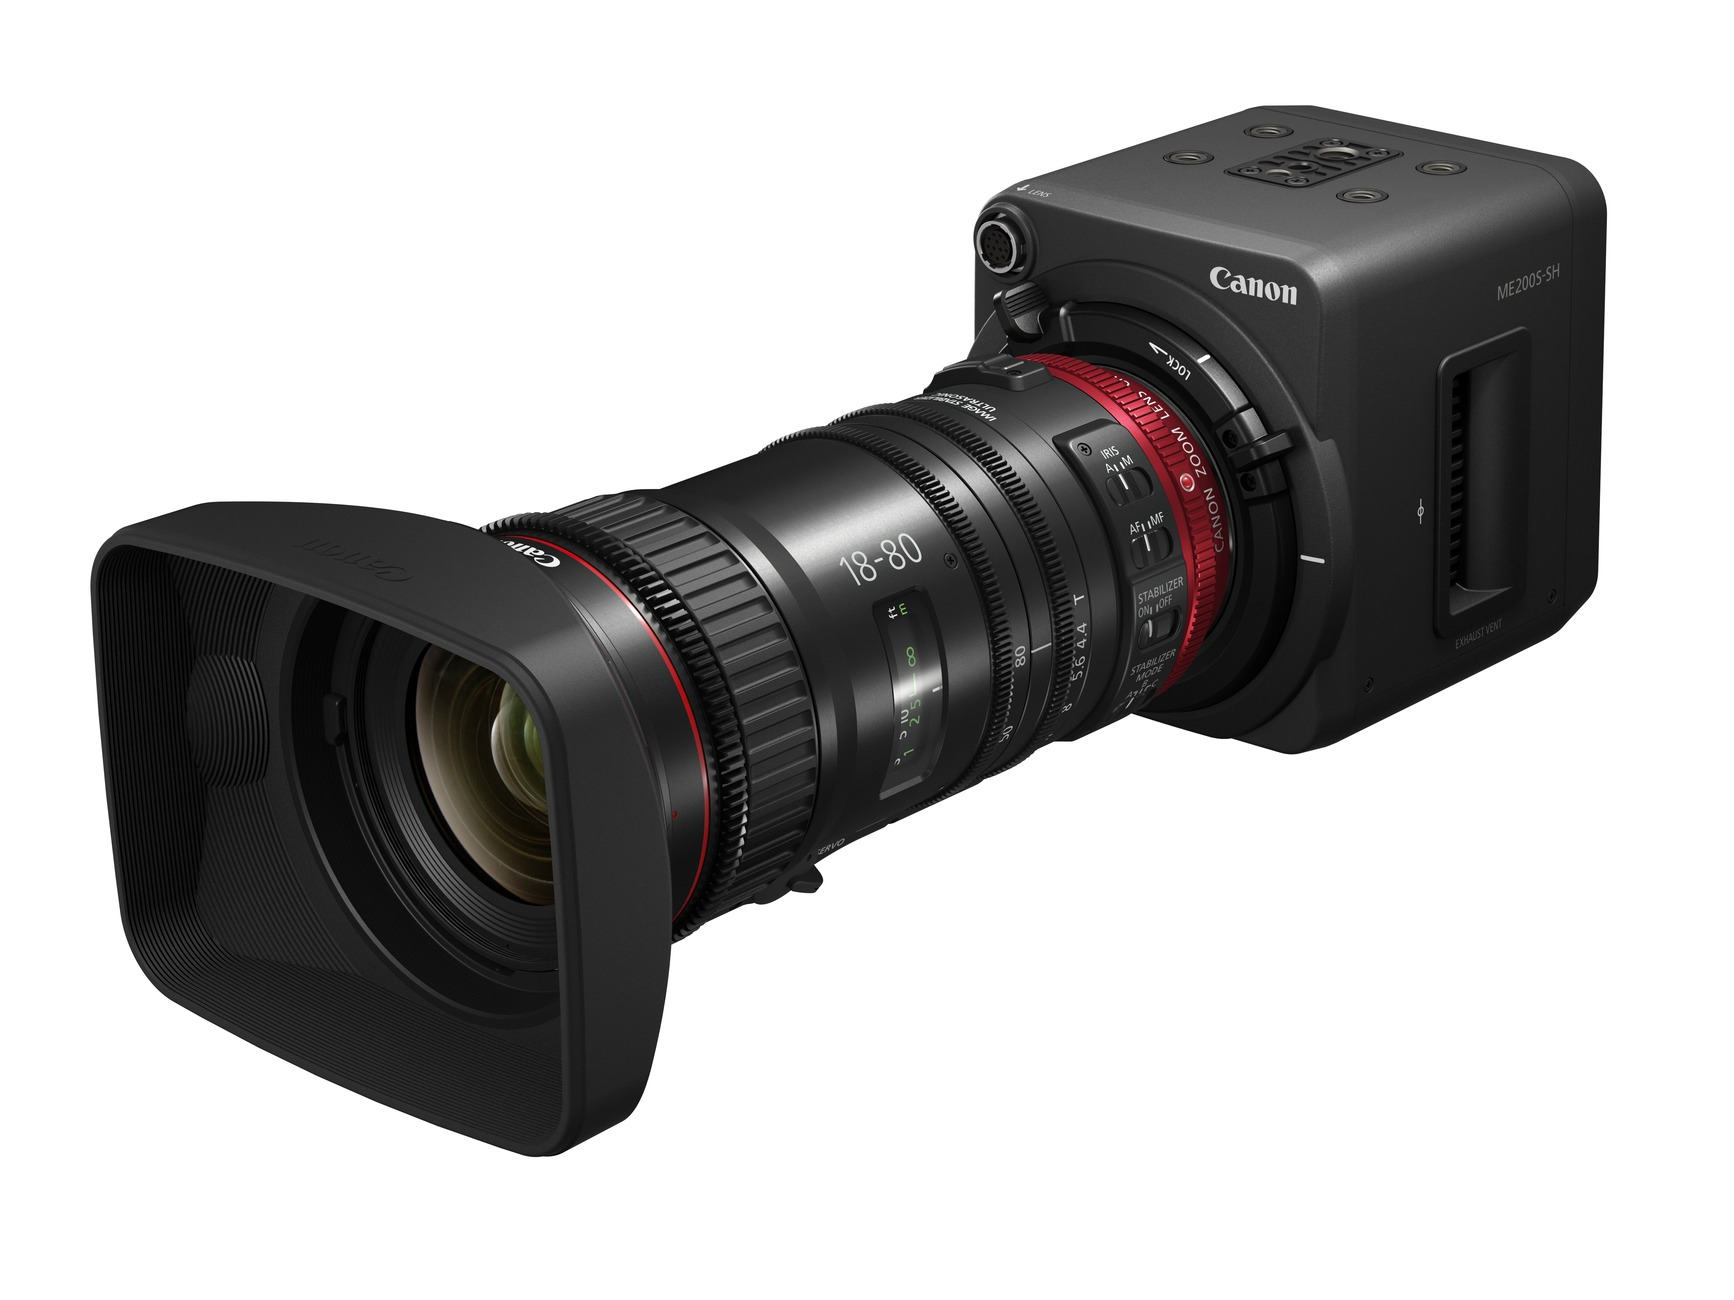 The newly announced Canon ME200S camera with the new 18-80mm T4.4 lens.